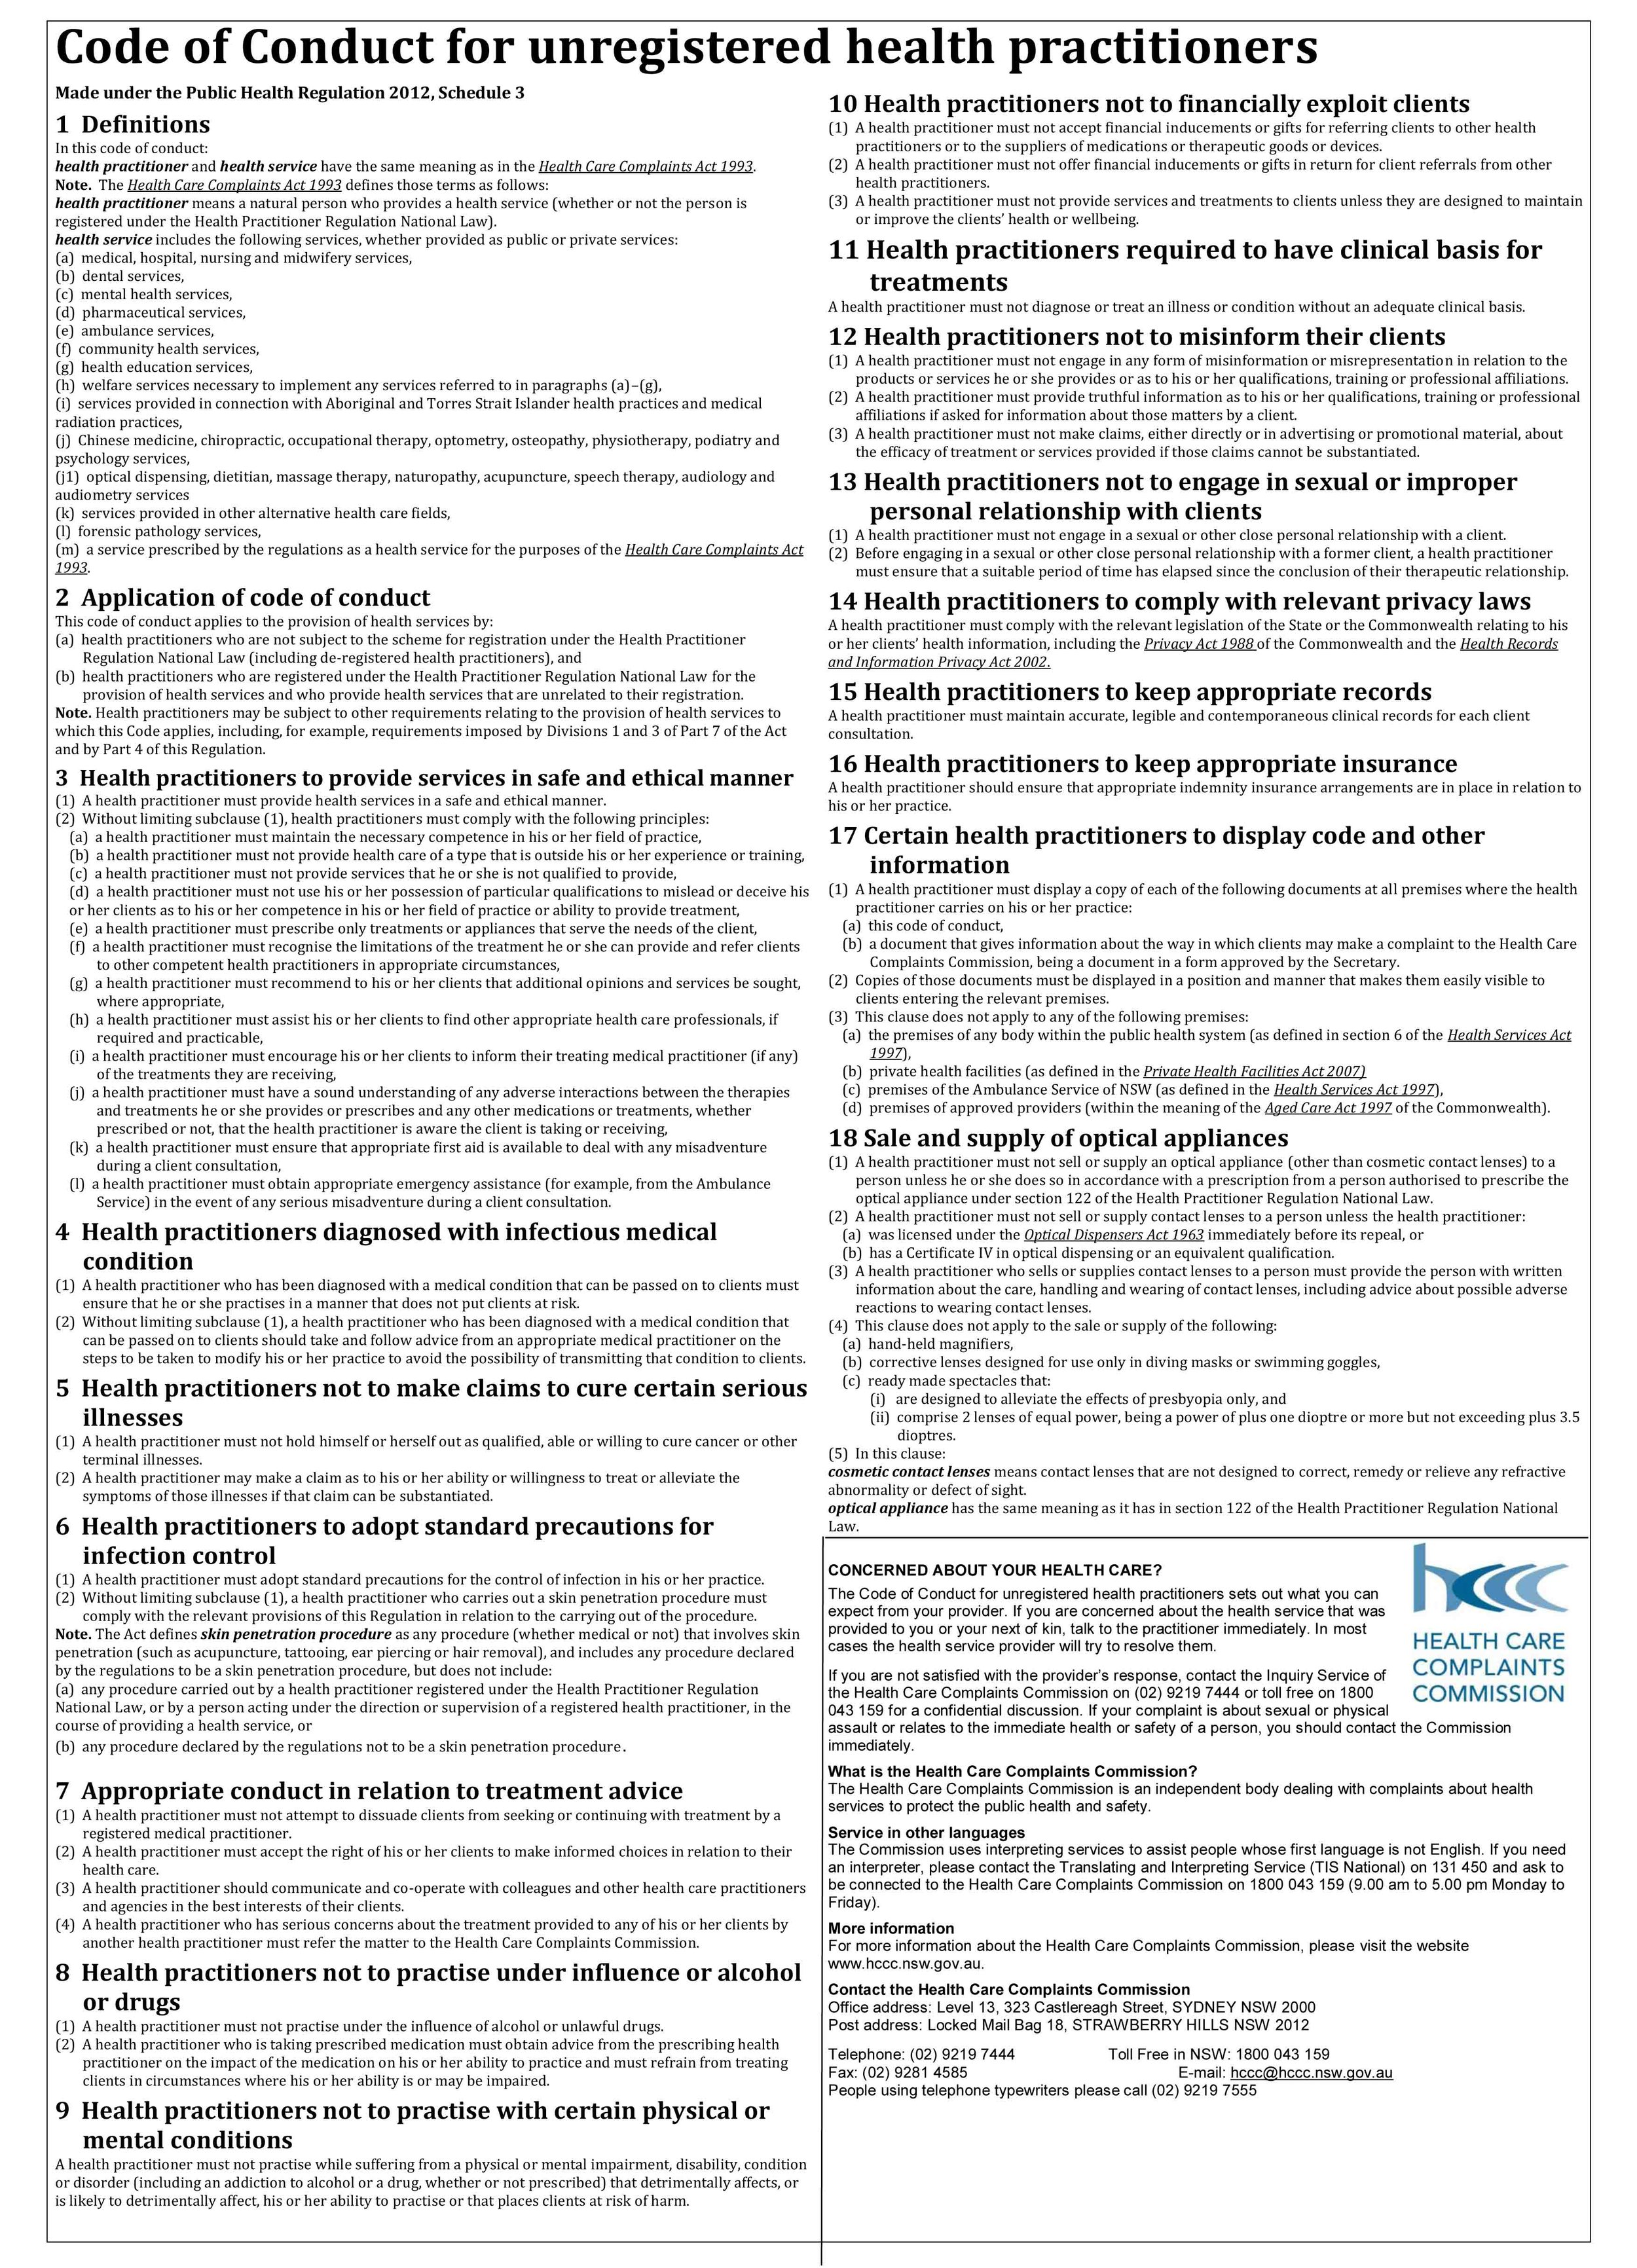 Code of Conduct for Unregistered Practitioners August 2017.jpg